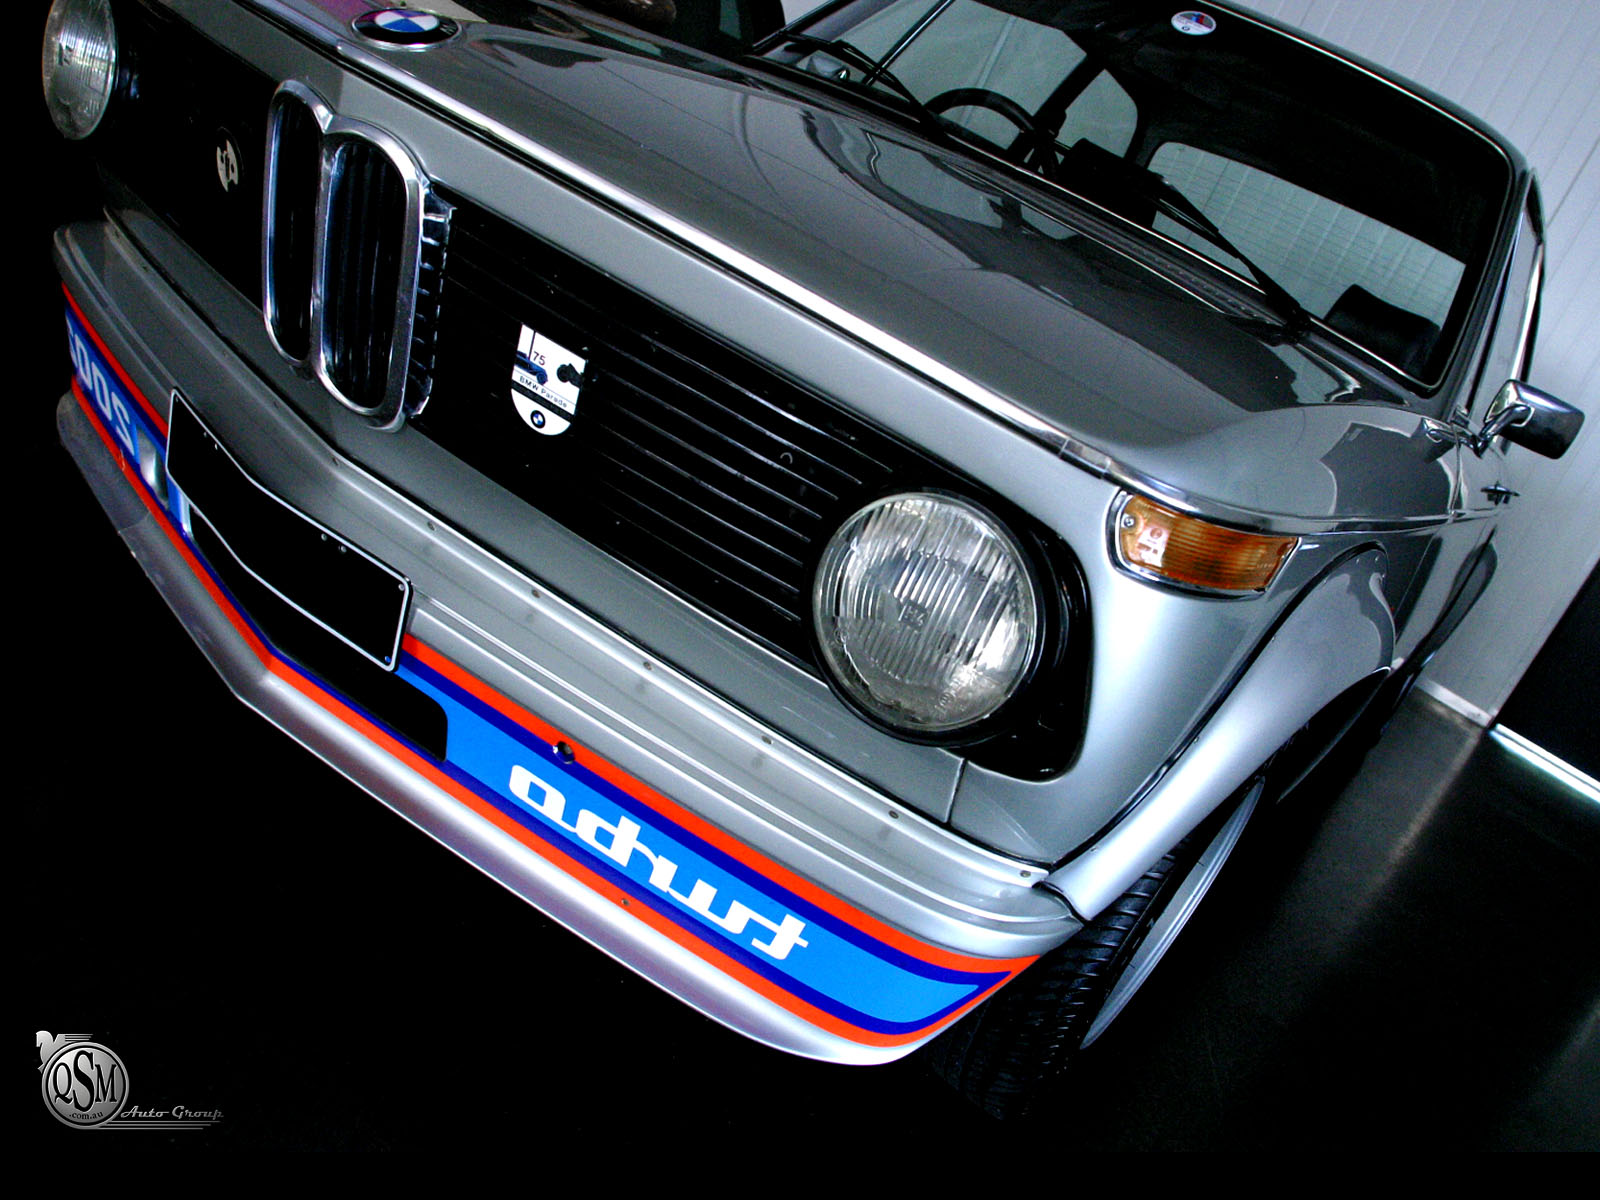 BMW 2002 FAQ - Pic request.